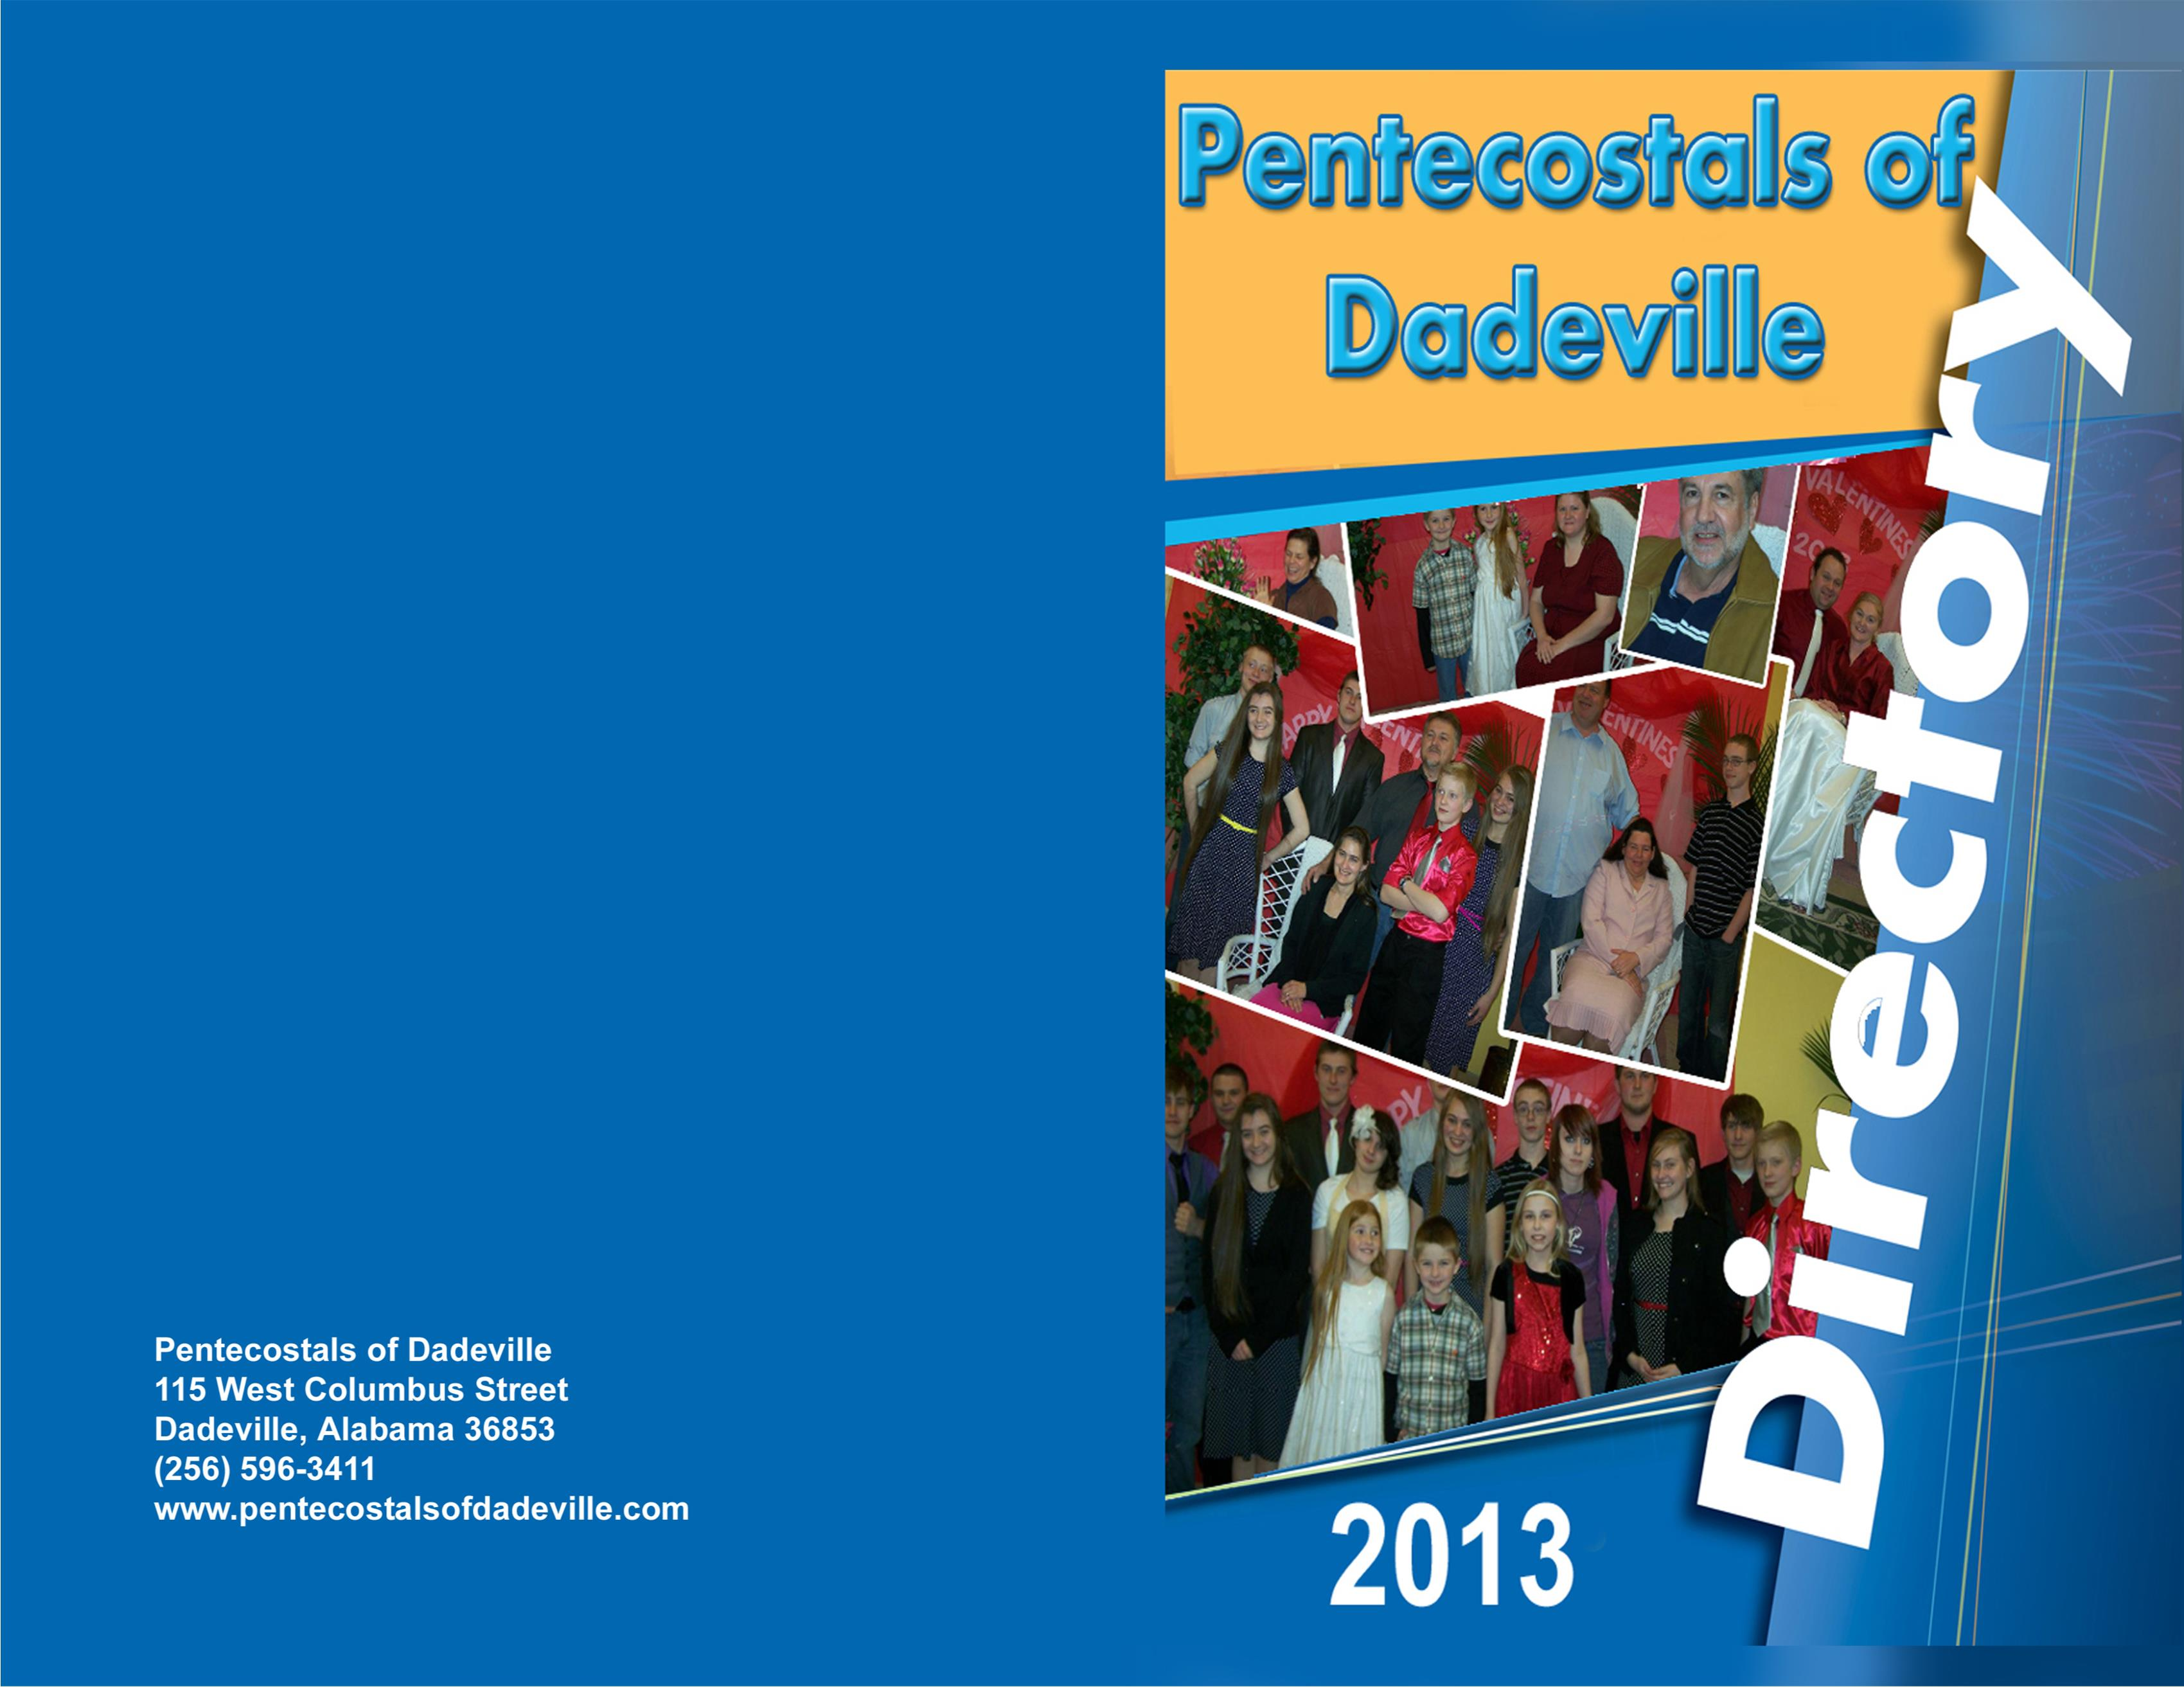 2013 POD Directory cover image